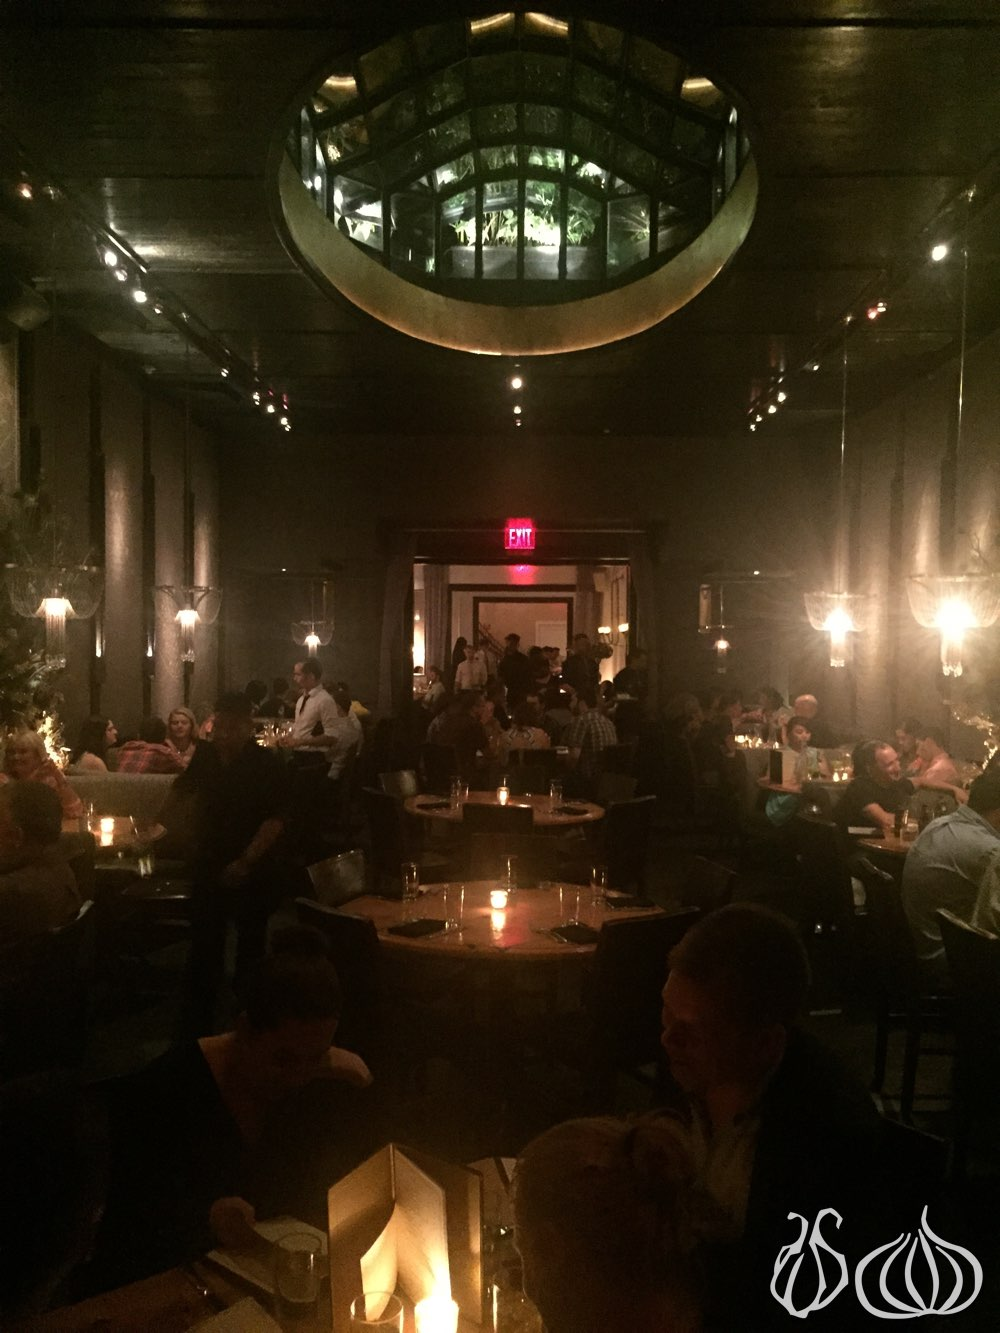 beauty-essex-restaurant-new-york542015-07-02-11-32-25